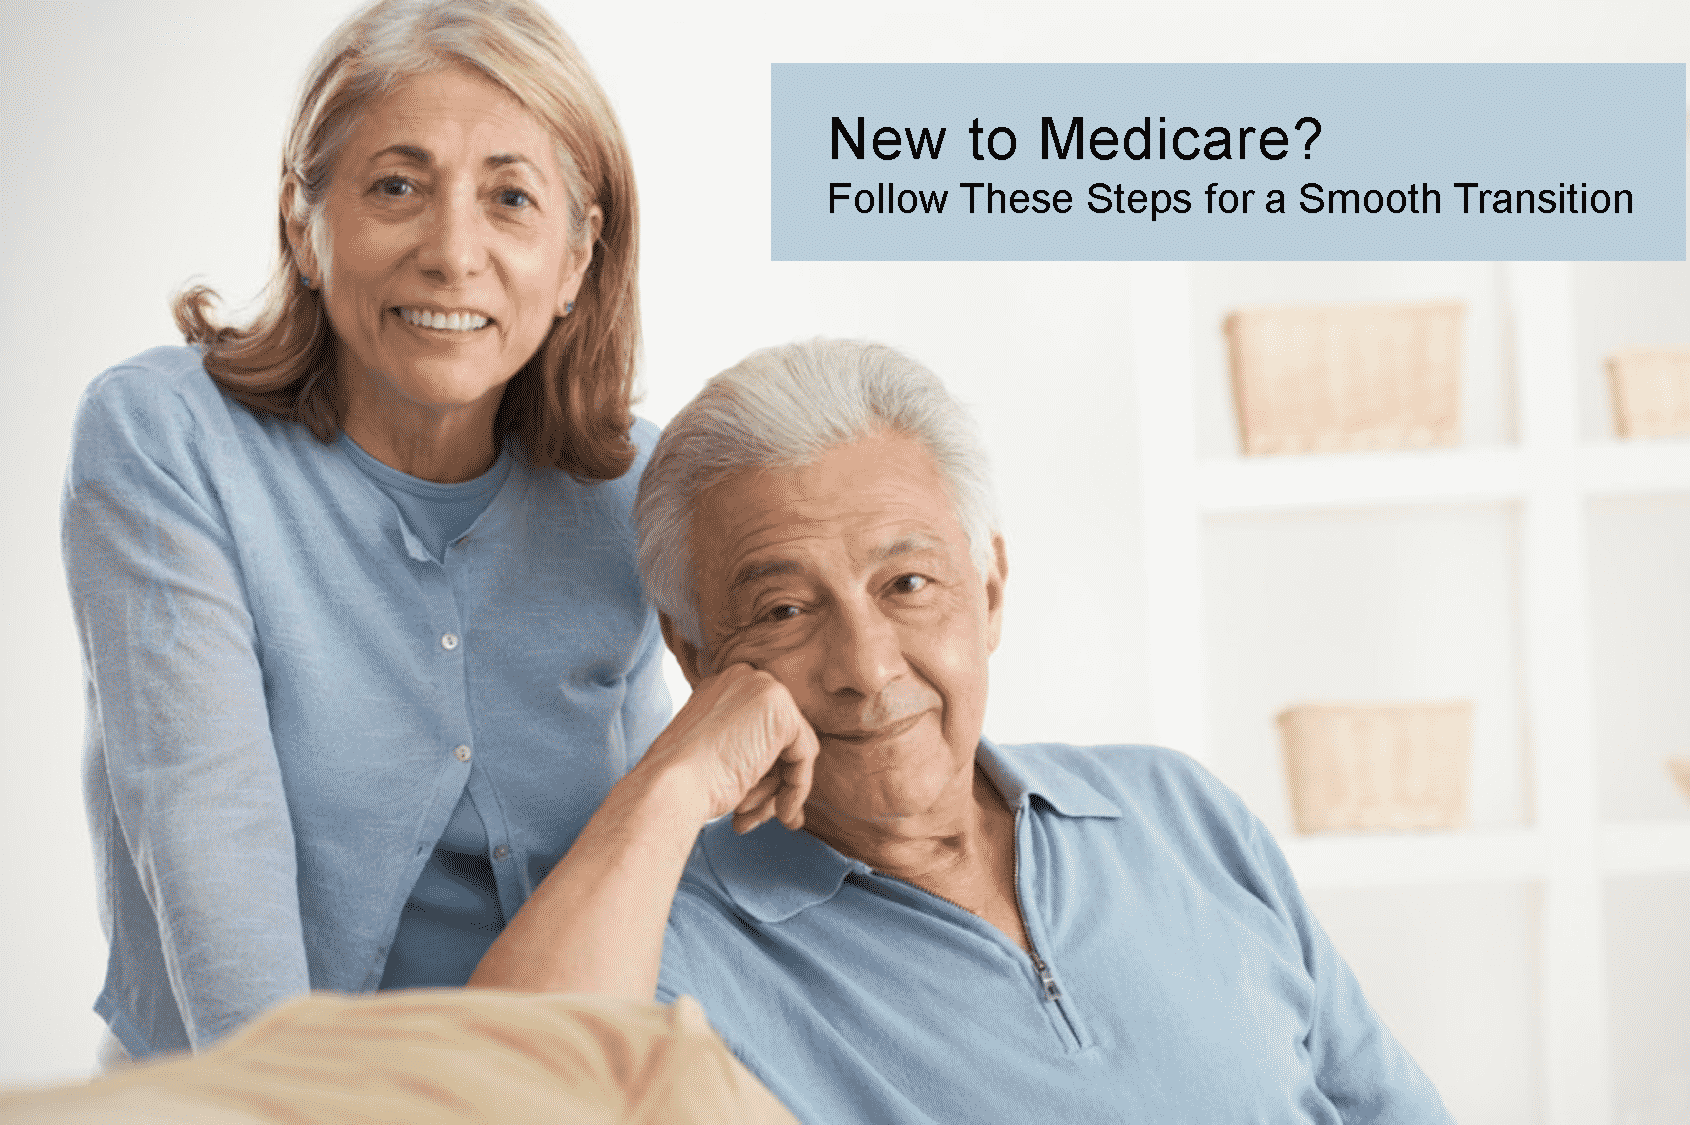 New to Medicare